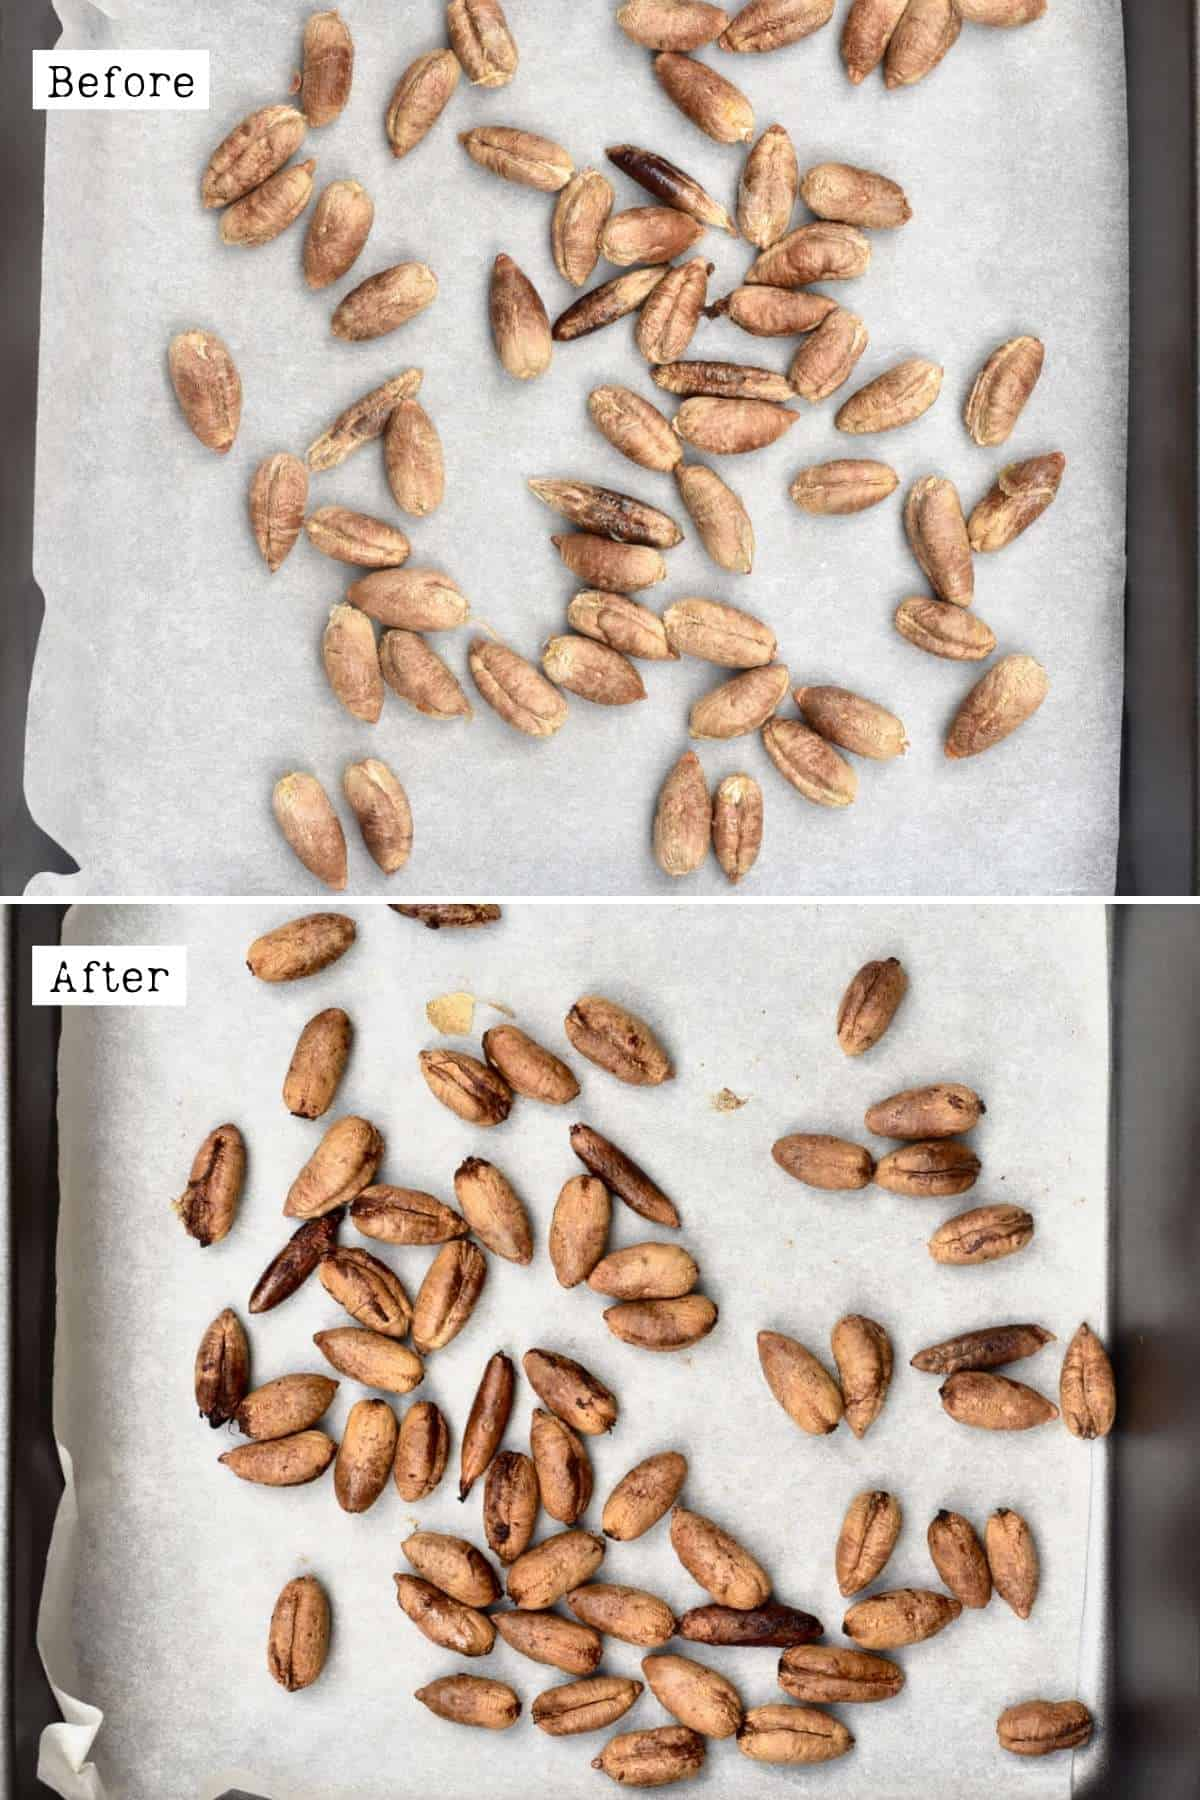 Before and after toasting date seeds